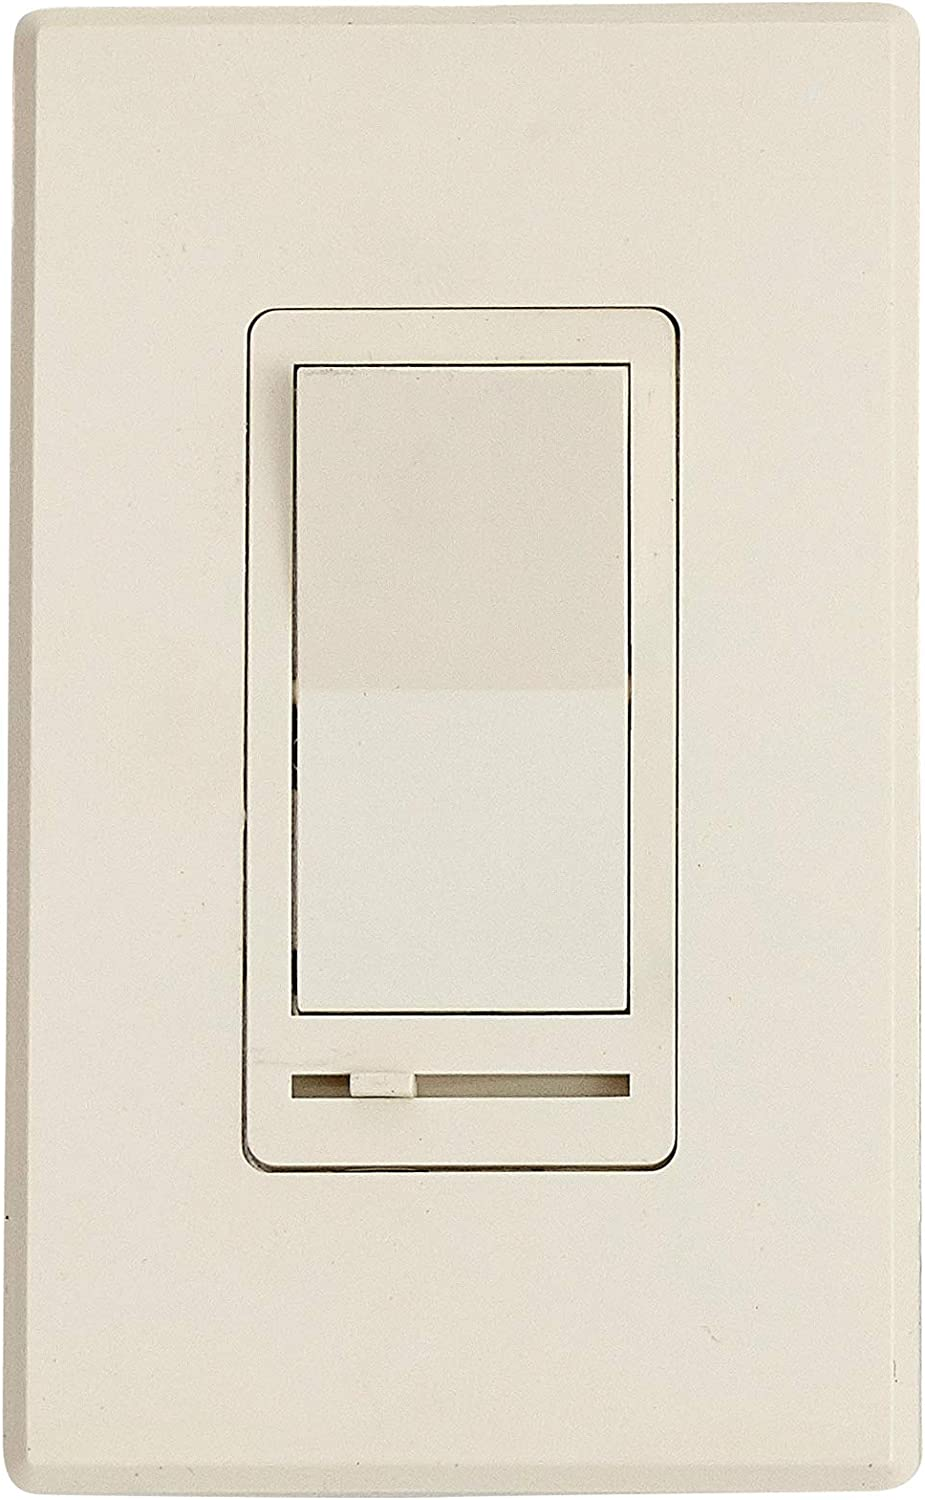 Hamilton Hills LED Dimmer Switch with Faceplate Cover | Magnetic